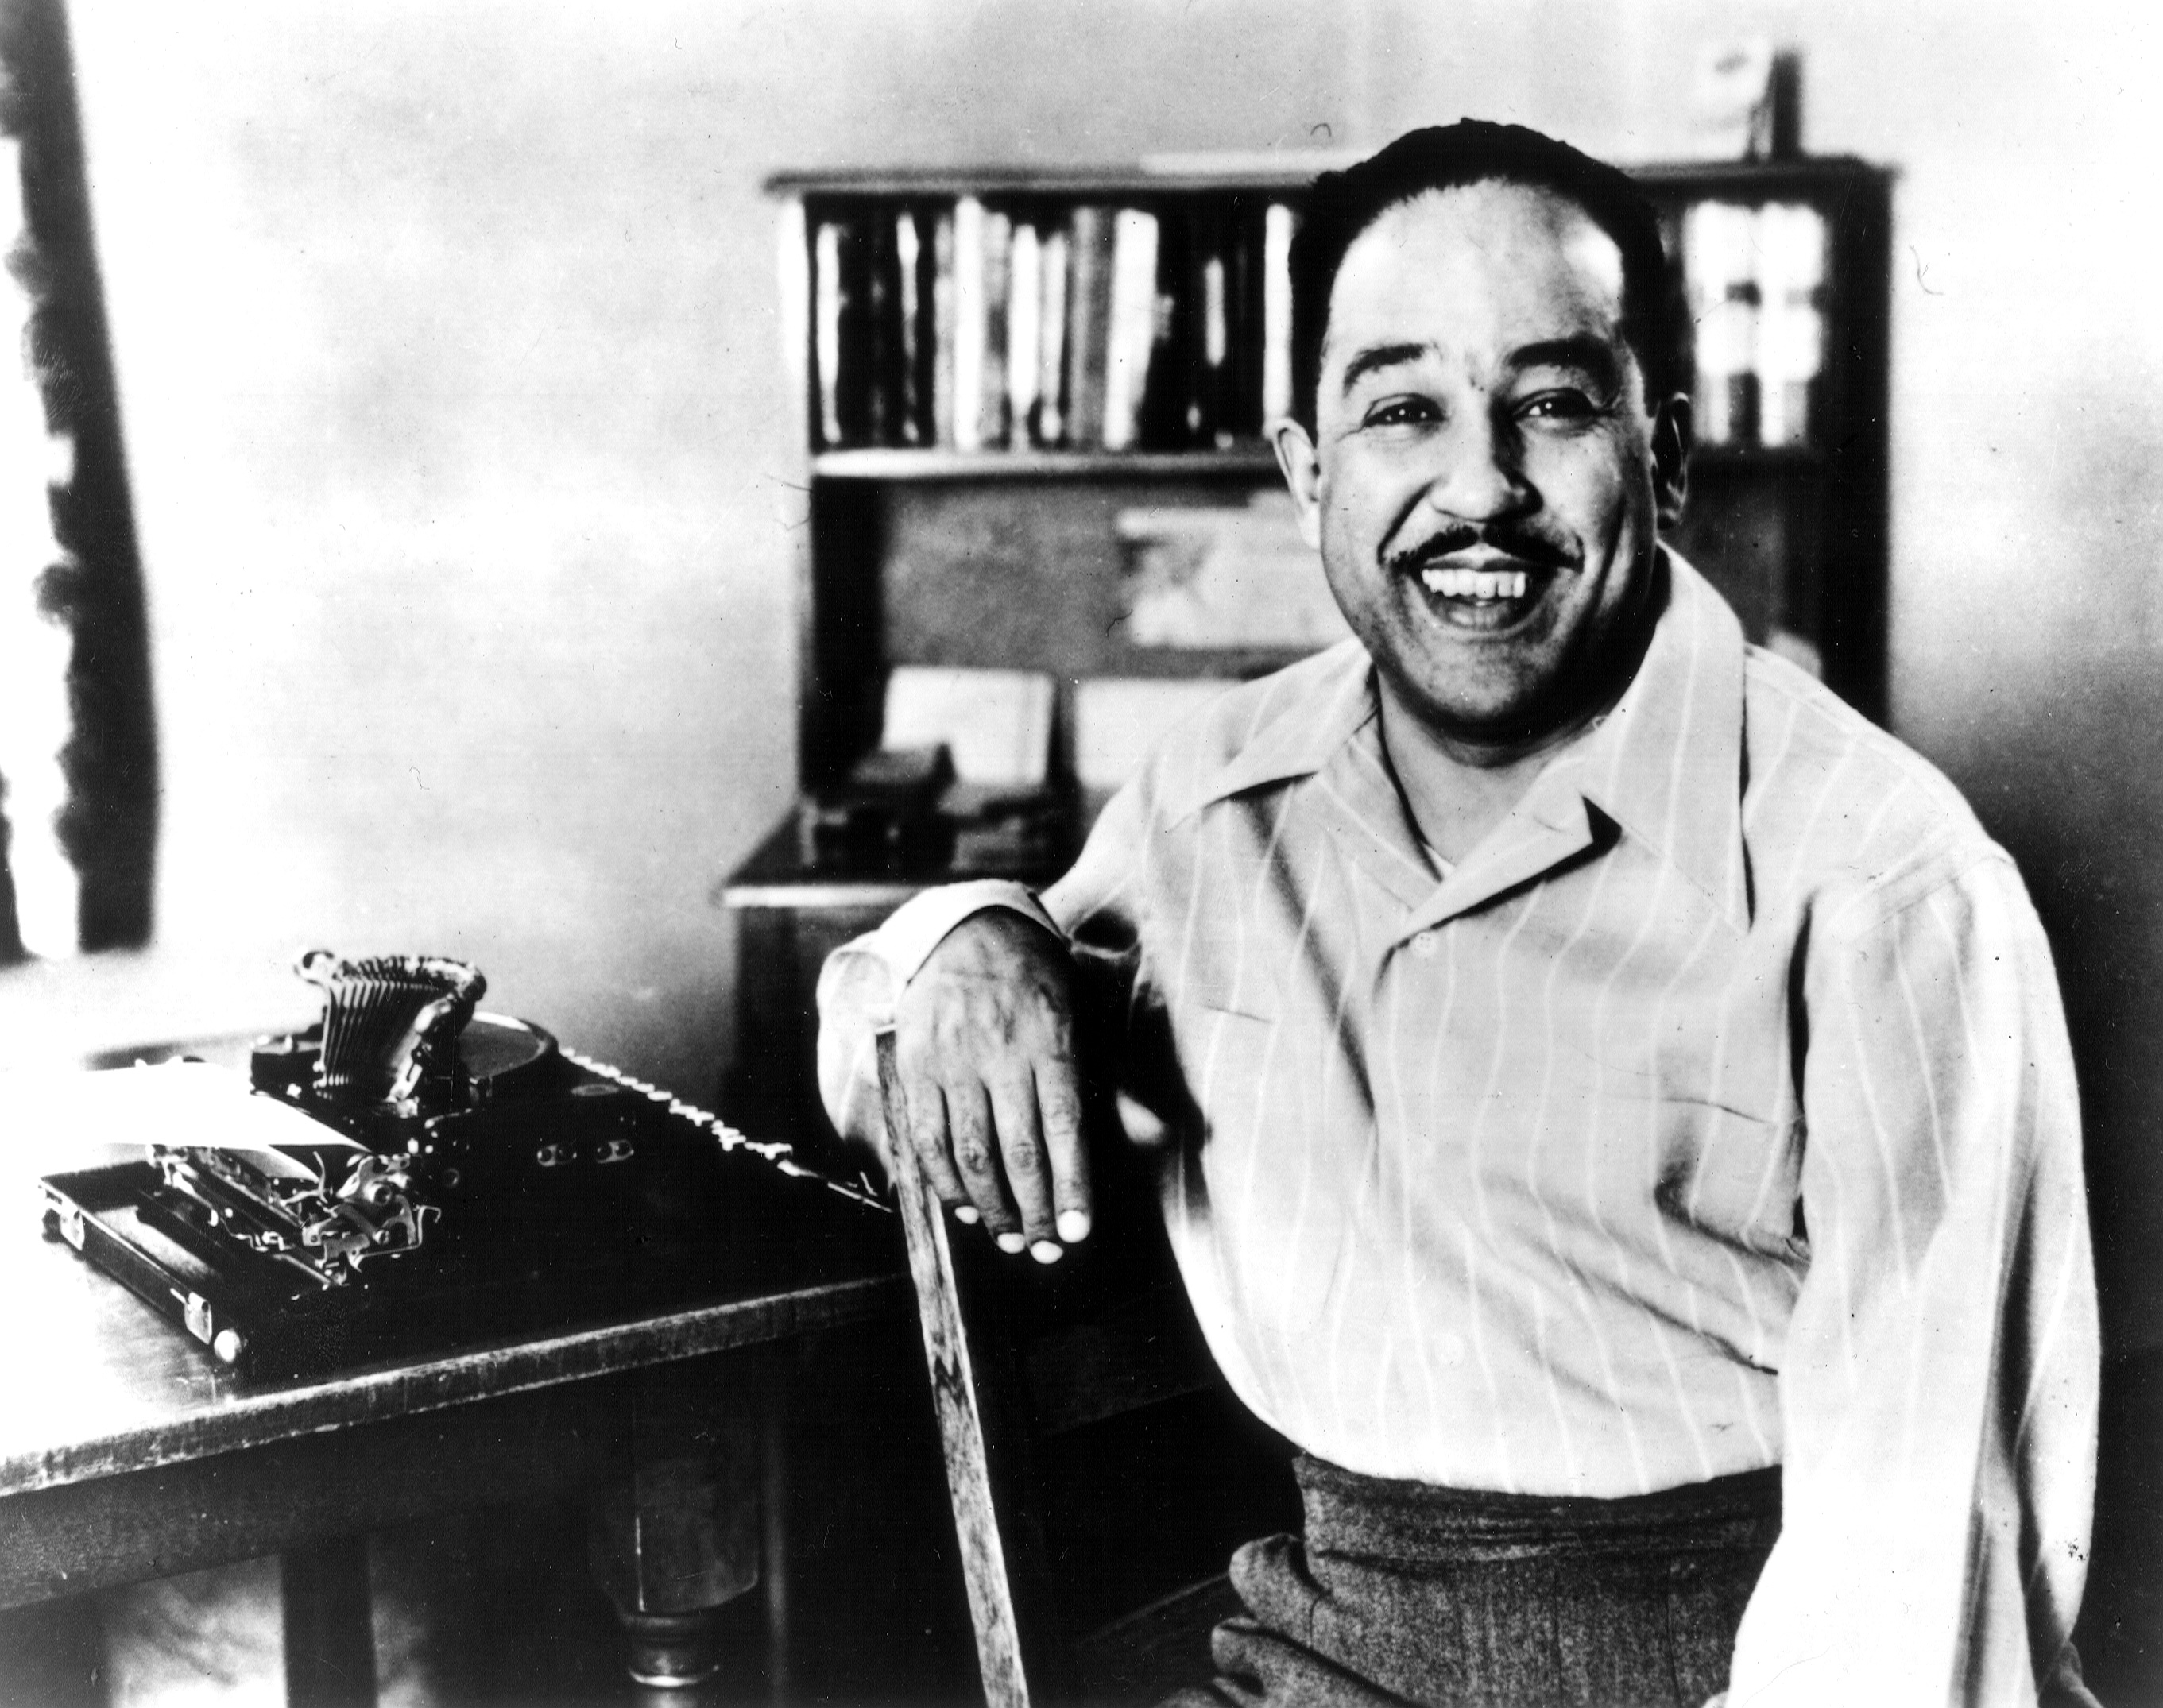 the life and works of james langston hughes Life and work of langston hughes early years james mercer langston hughes was born in joplin, missouri, on february 1, 1902, to james nathaniel hughes, a lawyer and businessman, and carrie mercer (langston) hughes, a teacher.